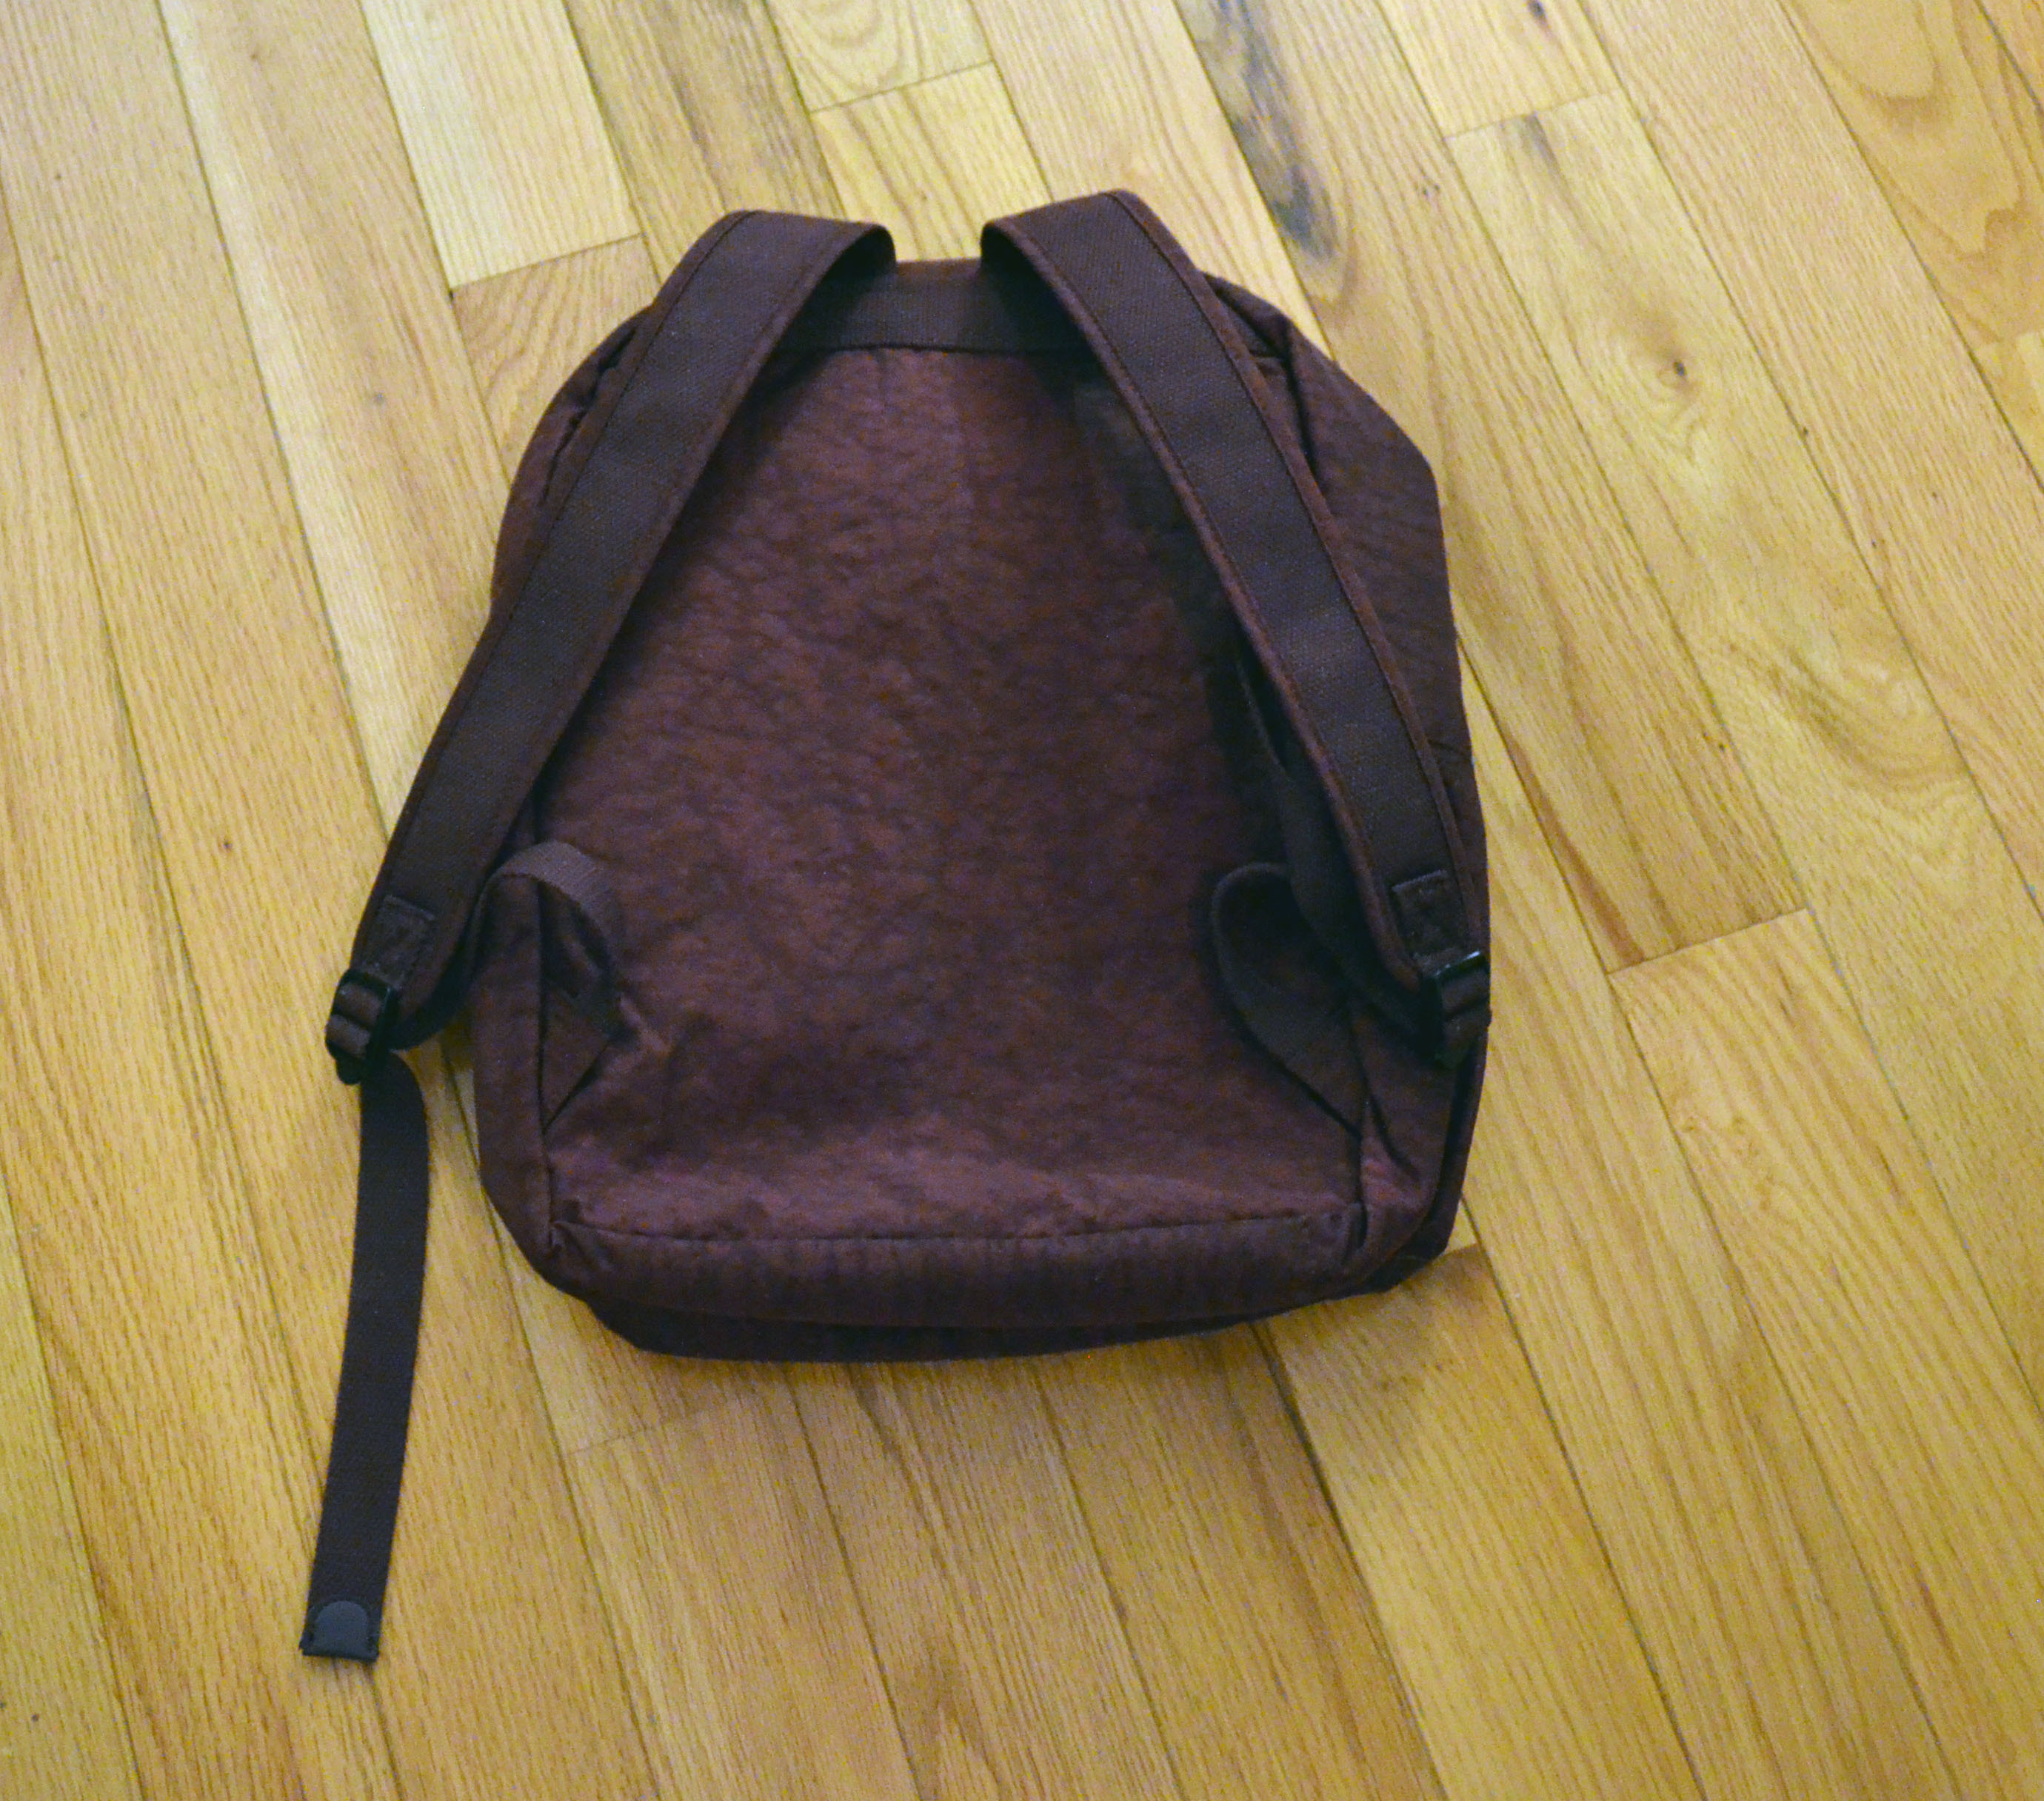 The rear of the backpack.